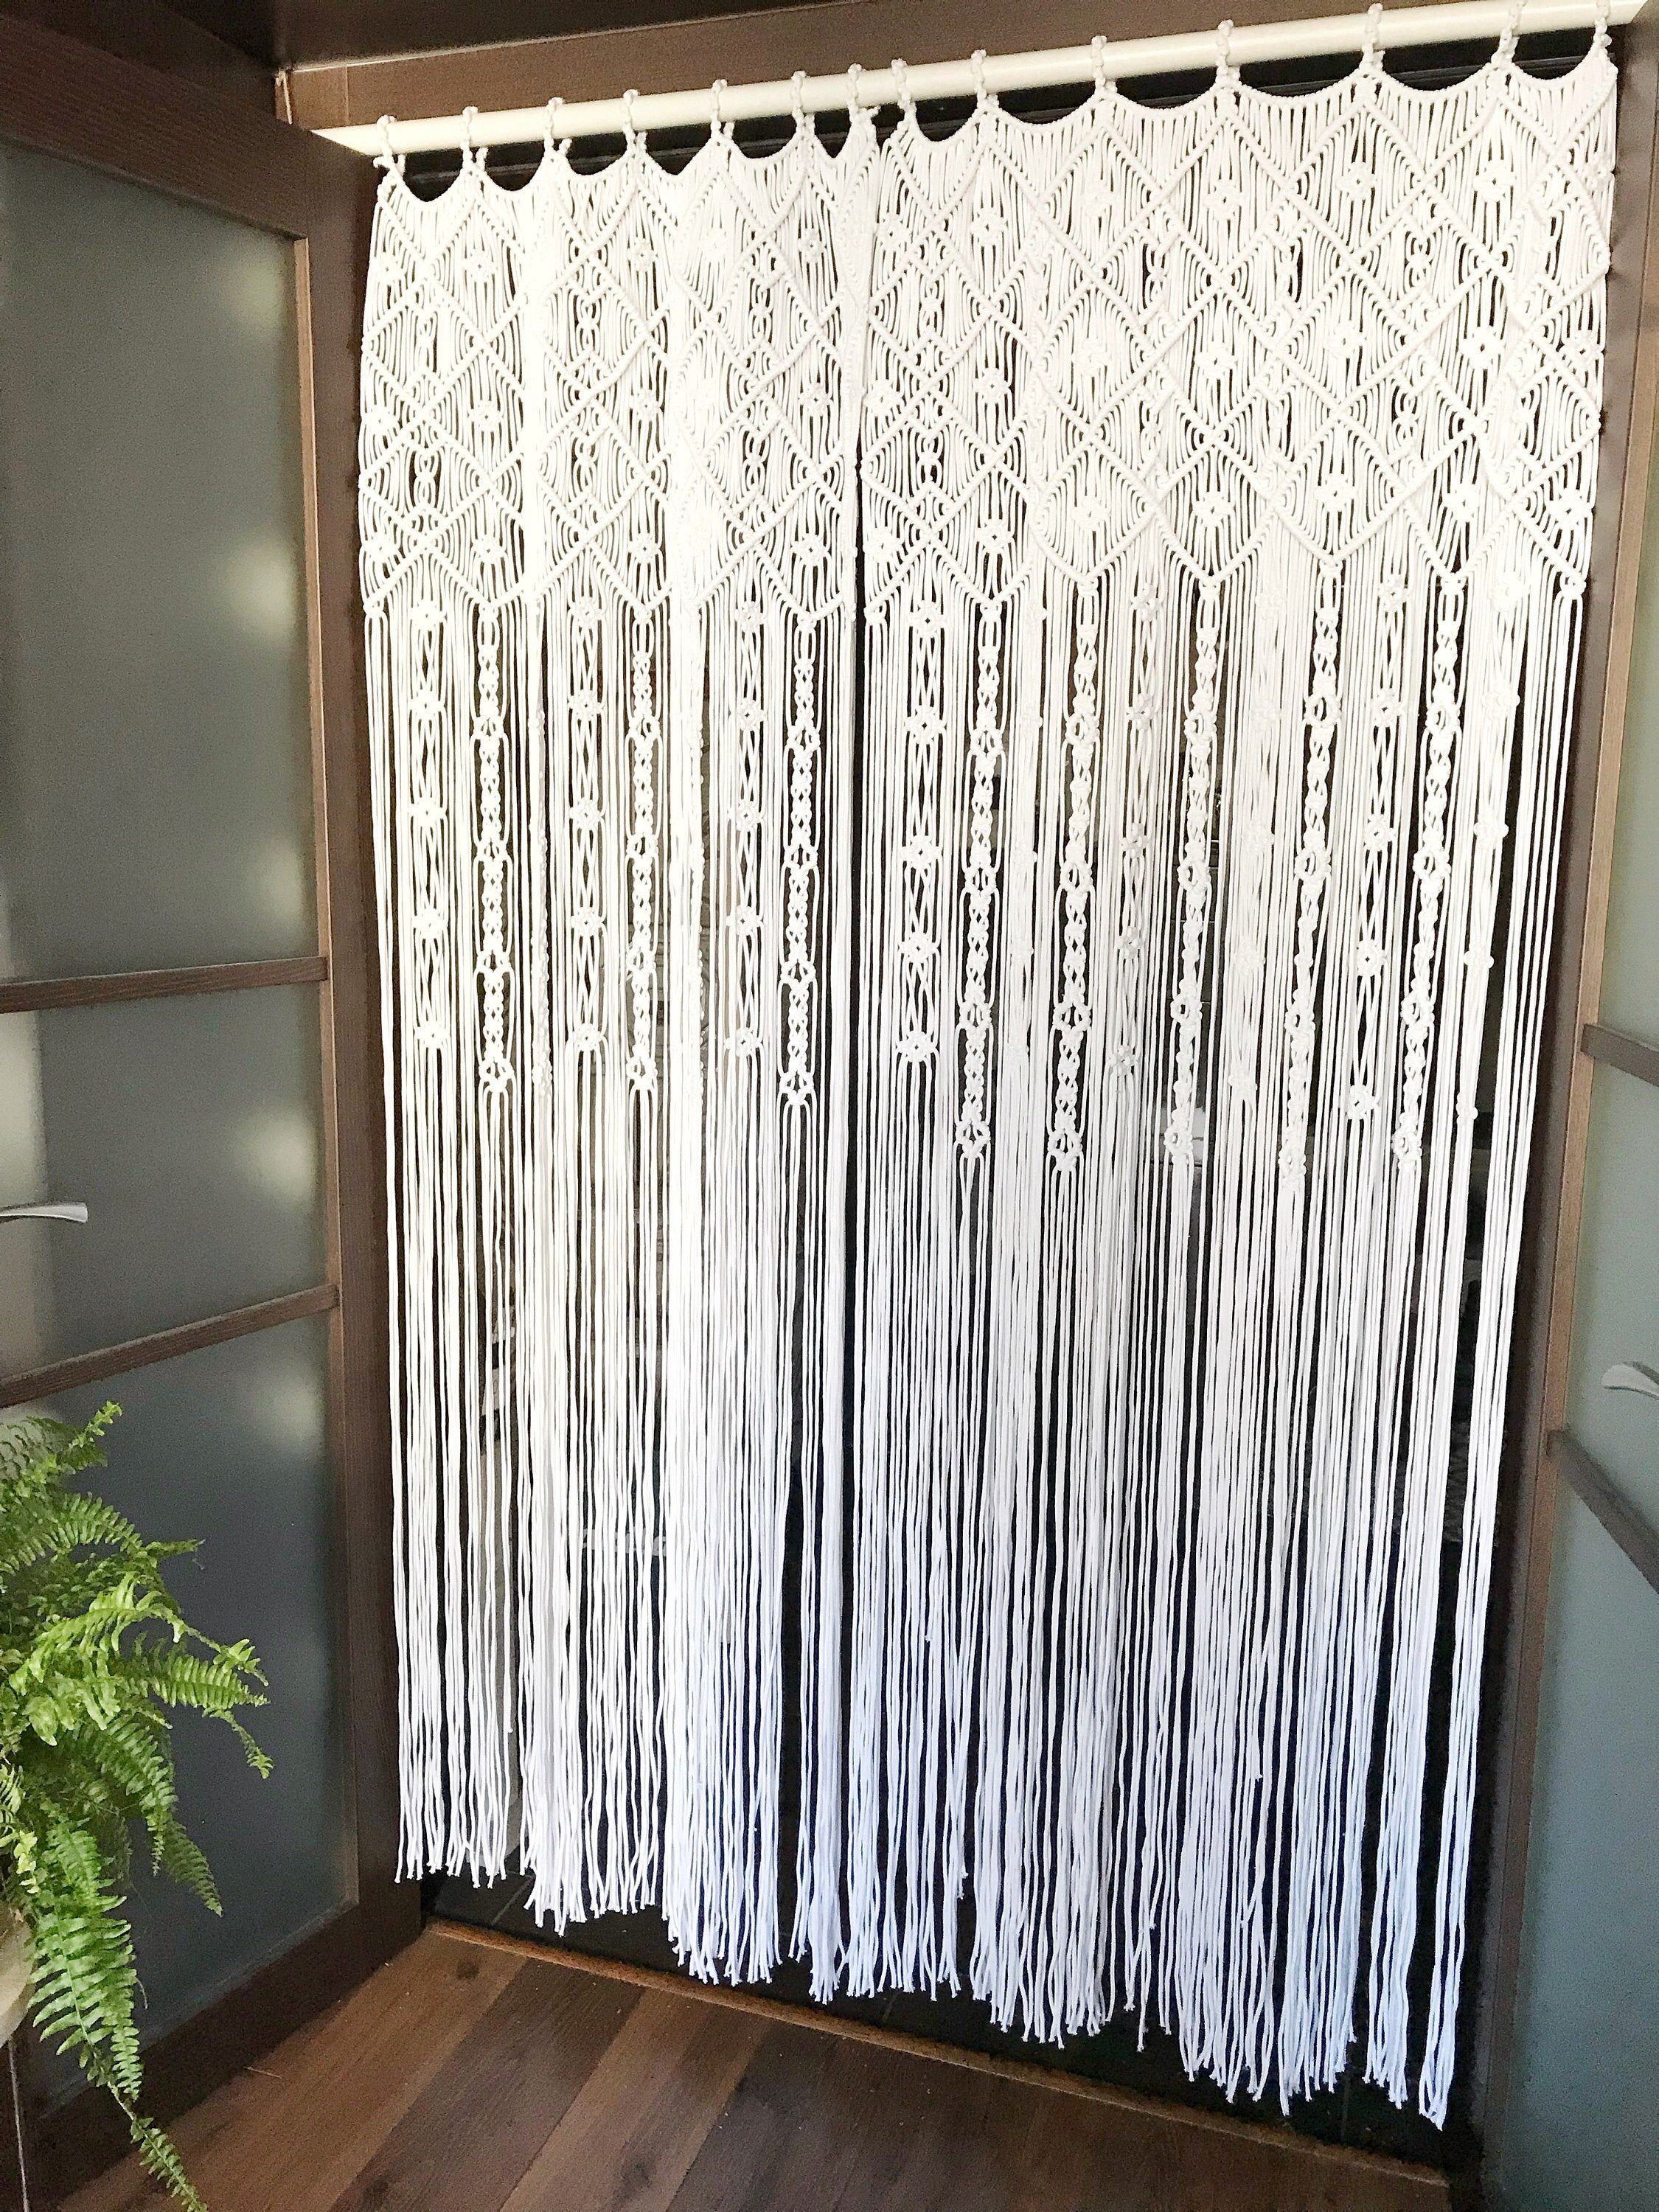 Macrame Curtain One Or Two Panels Curtain Macrame Room Etsy Macrame Curtain Macrame Door Curtain Curtains